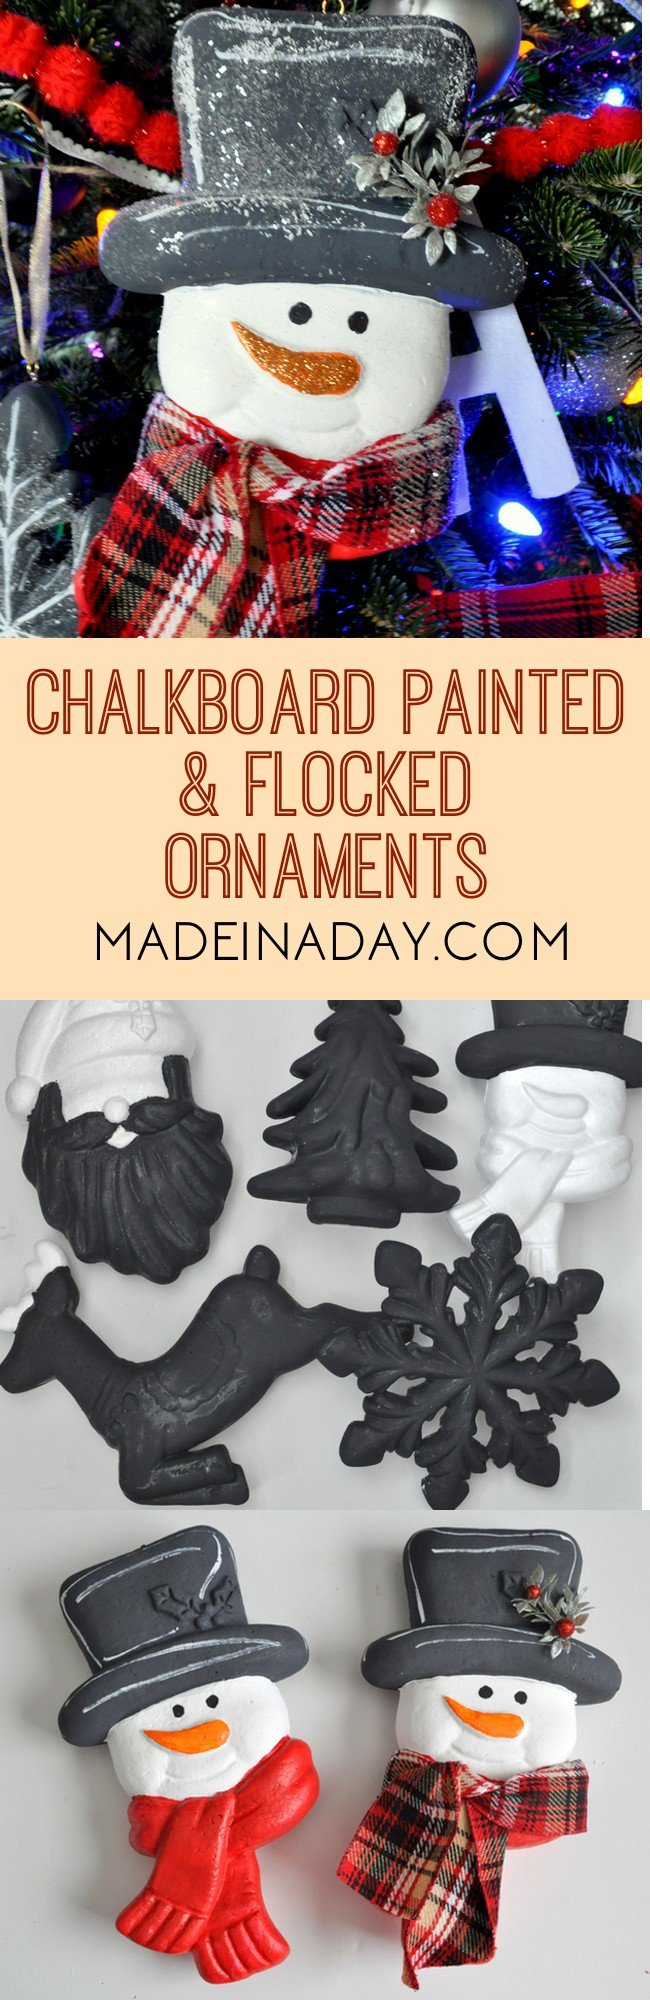 Chalkboard Flocked Ornaments 2